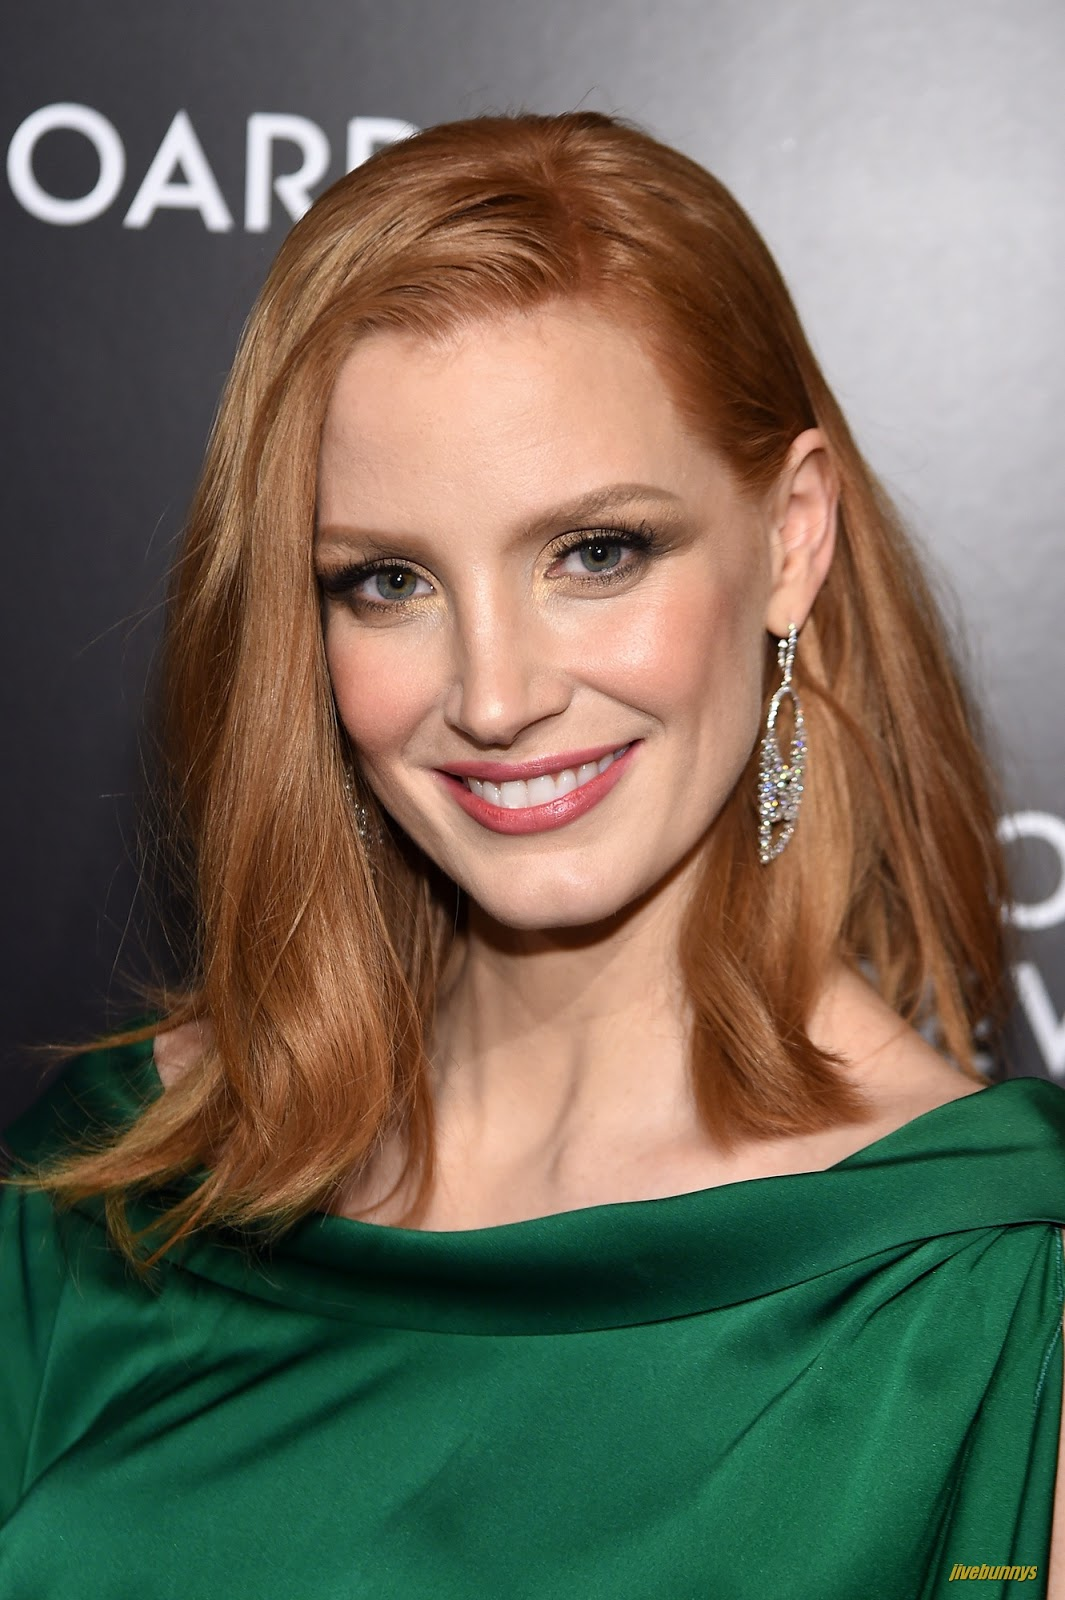 Jivebunnys Female Celebrity Picture Gallery: Jessica ... Jessica Chastain Movies